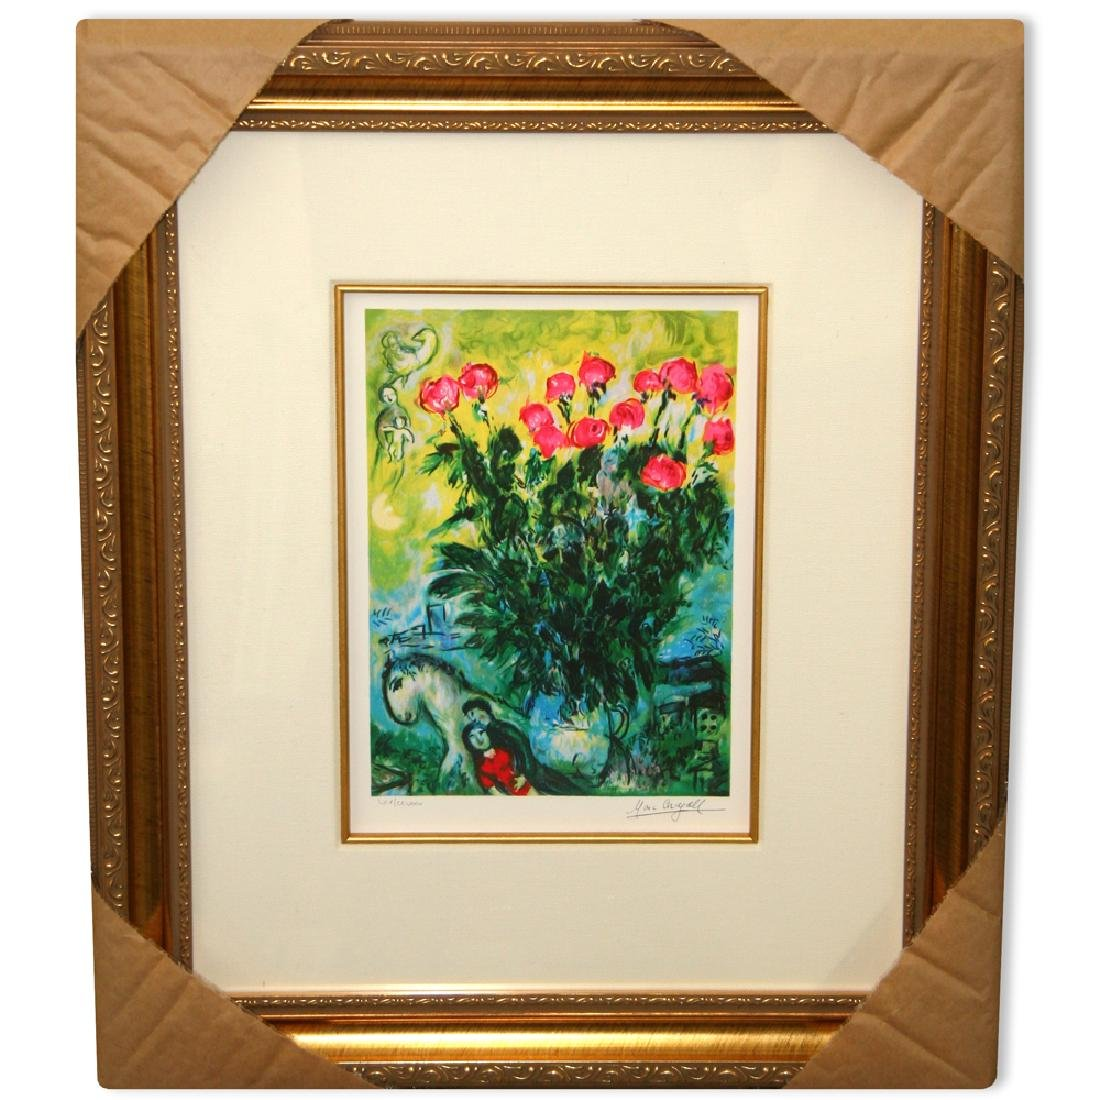 Chagall (After) 'Les Roses' Museum Framed Giclee-Ltd